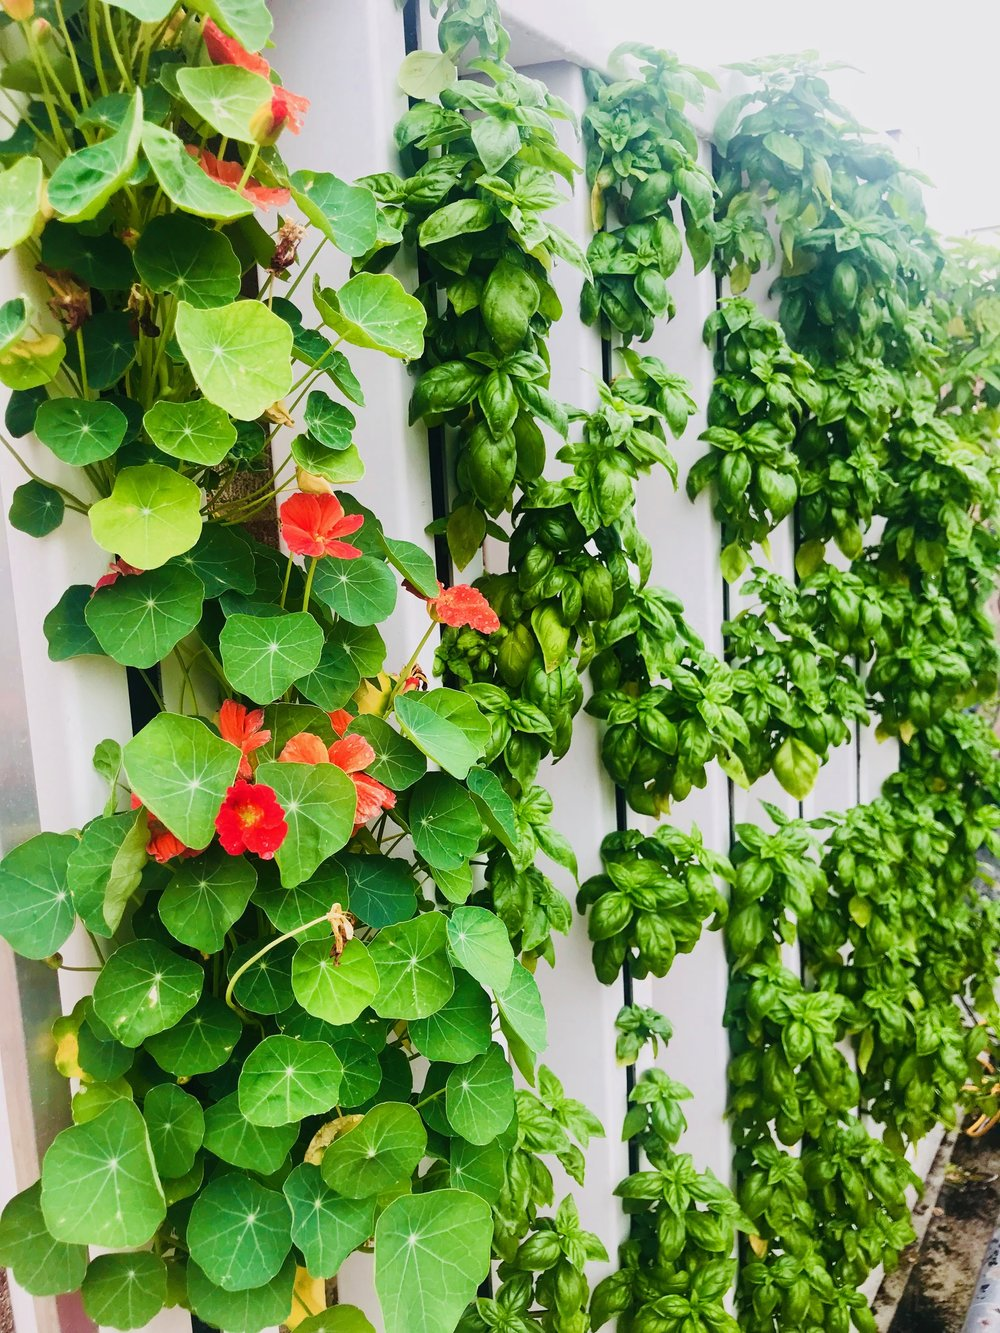 Hydroponics/Aquaponics  We specialize in indoor/greenhouse growing solutions.  We offer parts and resources for you to build, maintain, and grow your perfect hydro/aquaponics systems.  Contact us with inquiries at  info@cultivatethecity.com